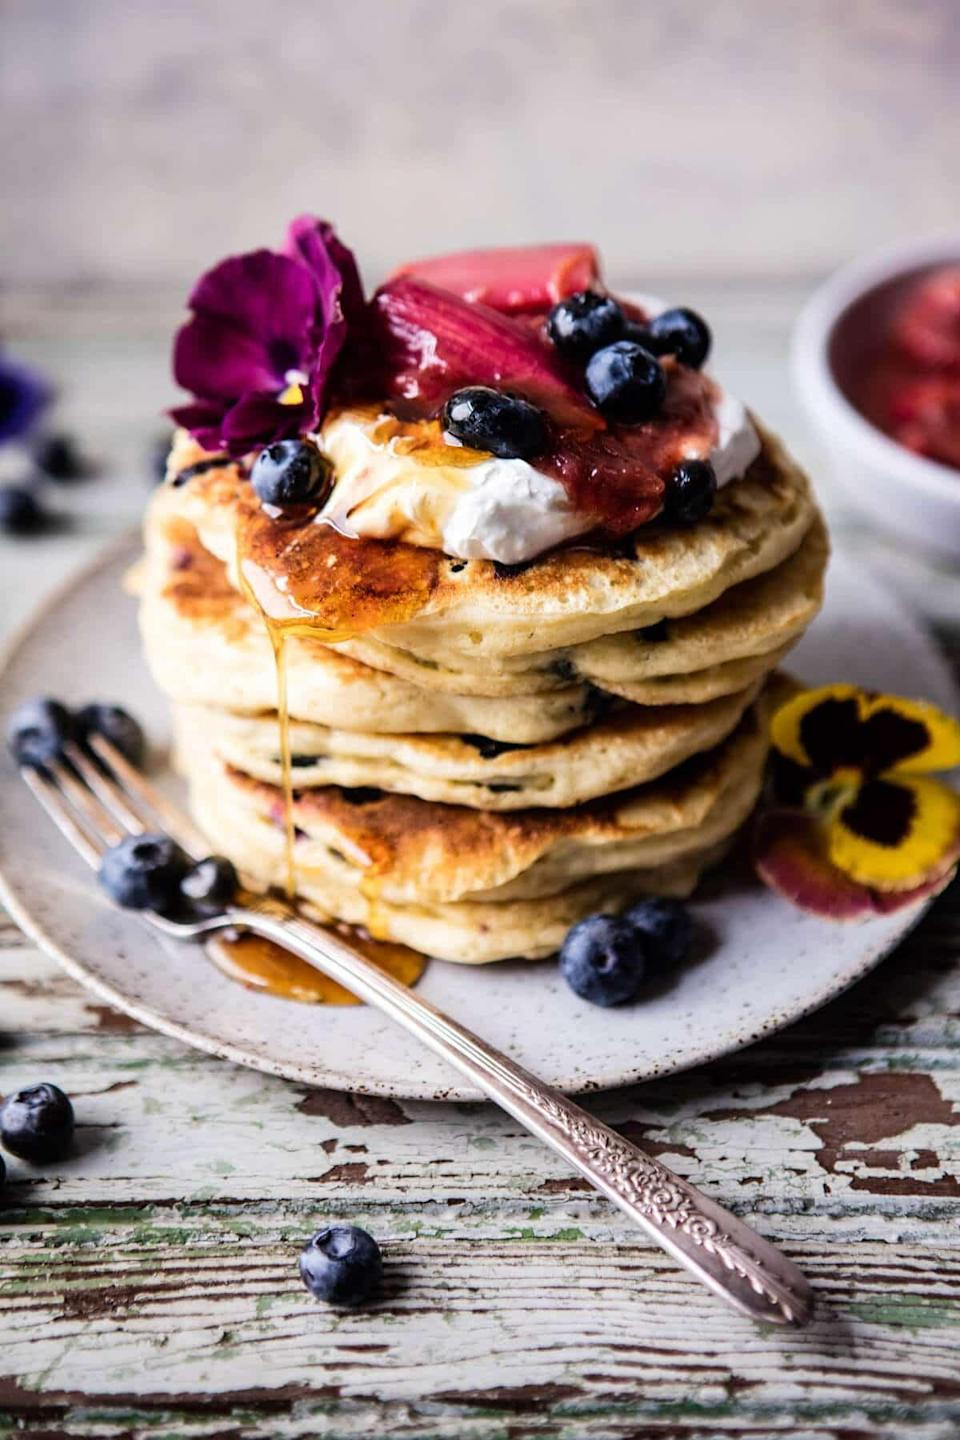 "<p>Take breakfast to a place it has never been before with this pancake recipe. The hearty almond flavor pairs effortlessly with the tart blueberry taste, so all you need to do is add syrup.</p> <p><strong>Get the recipe</strong>: <a href=""https://www.halfbakedharvest.com/blueberry-almond-pancakes/"" class=""link rapid-noclick-resp"" rel=""nofollow noopener"" target=""_blank"" data-ylk=""slk:blueberry almond pancakes"">blueberry almond pancakes</a></p>"